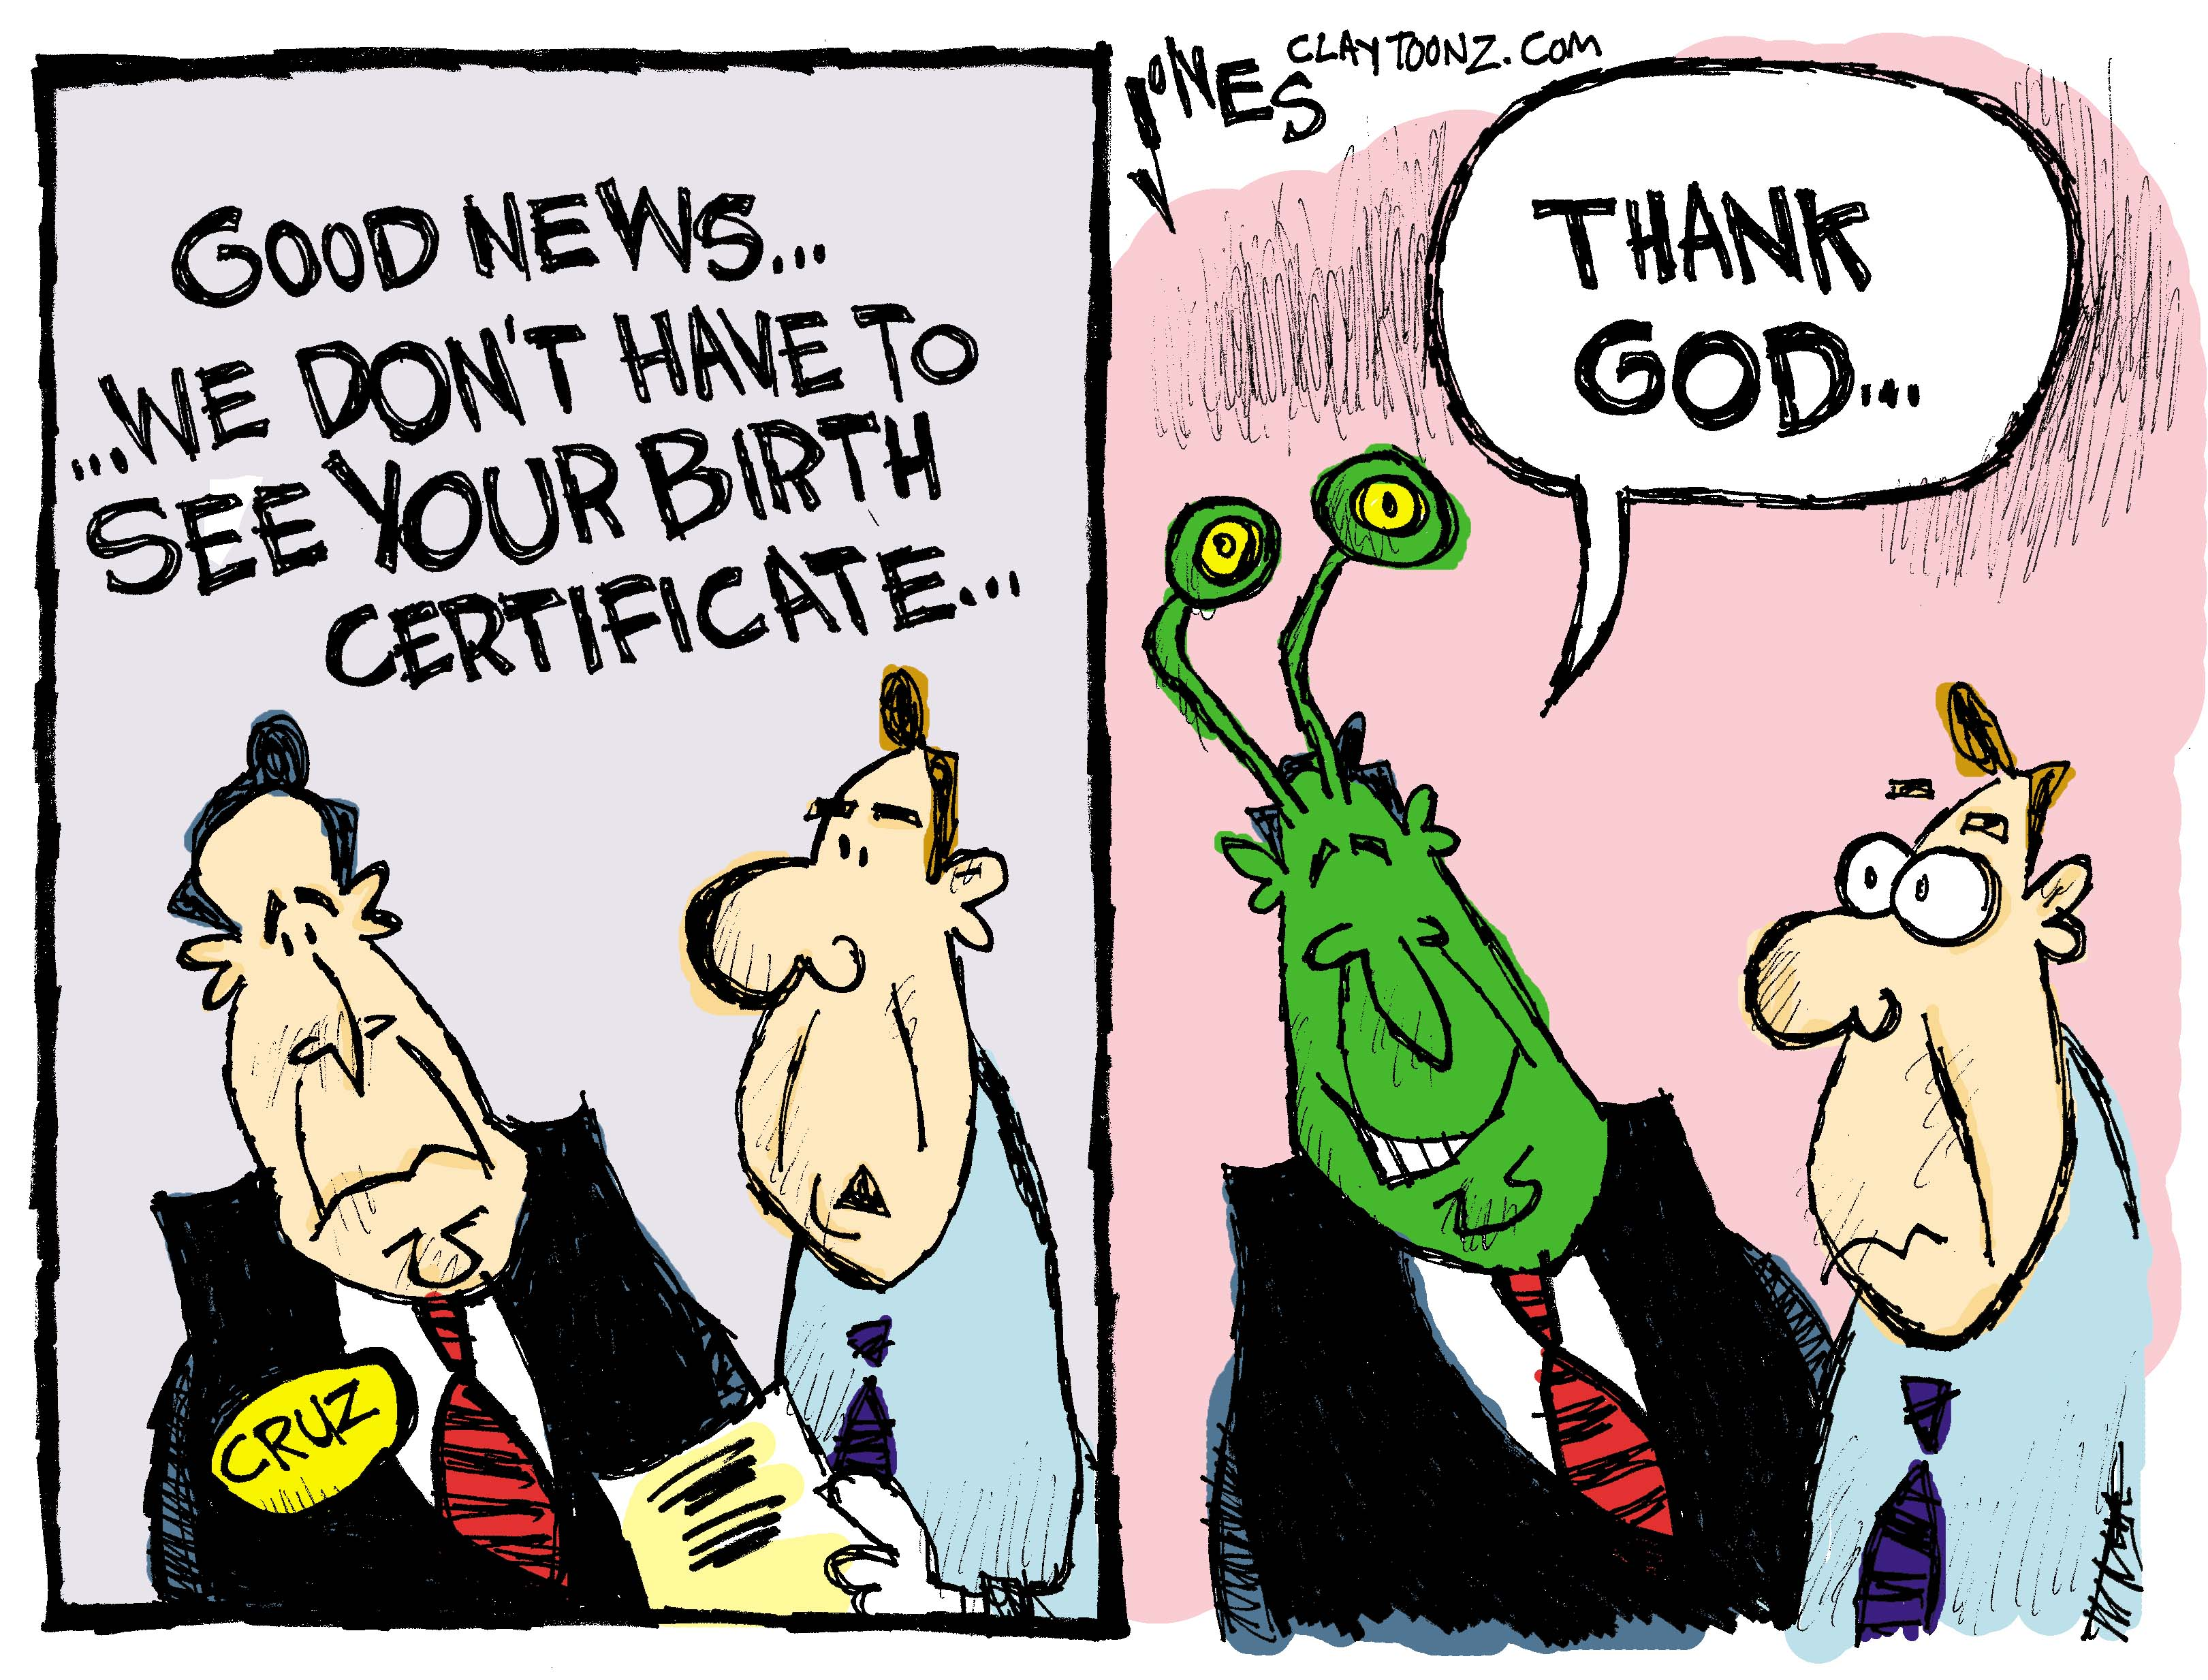 Ted Cruzs Birth Certificate Claytoonz